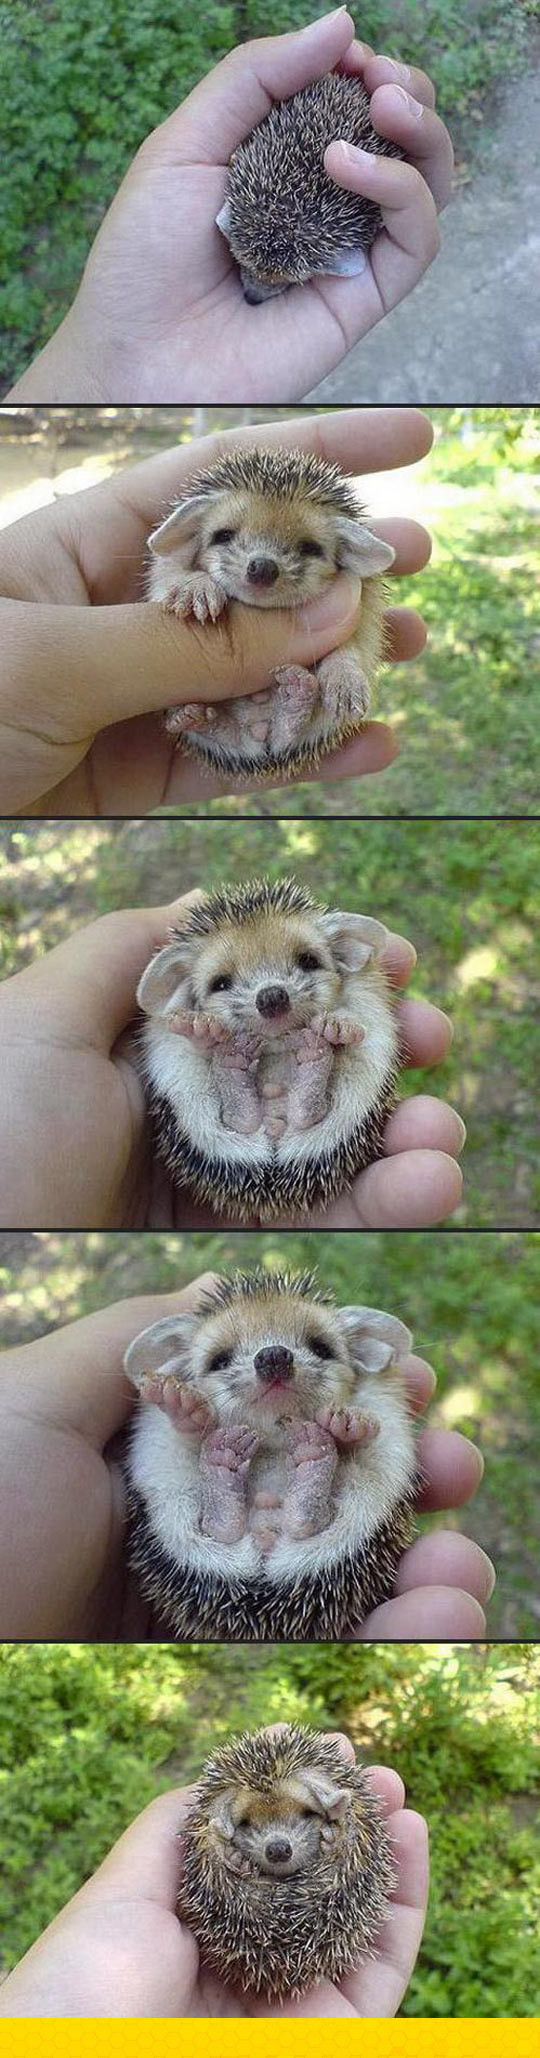 funny-cute-Baby-Hedgehog-ball-hand